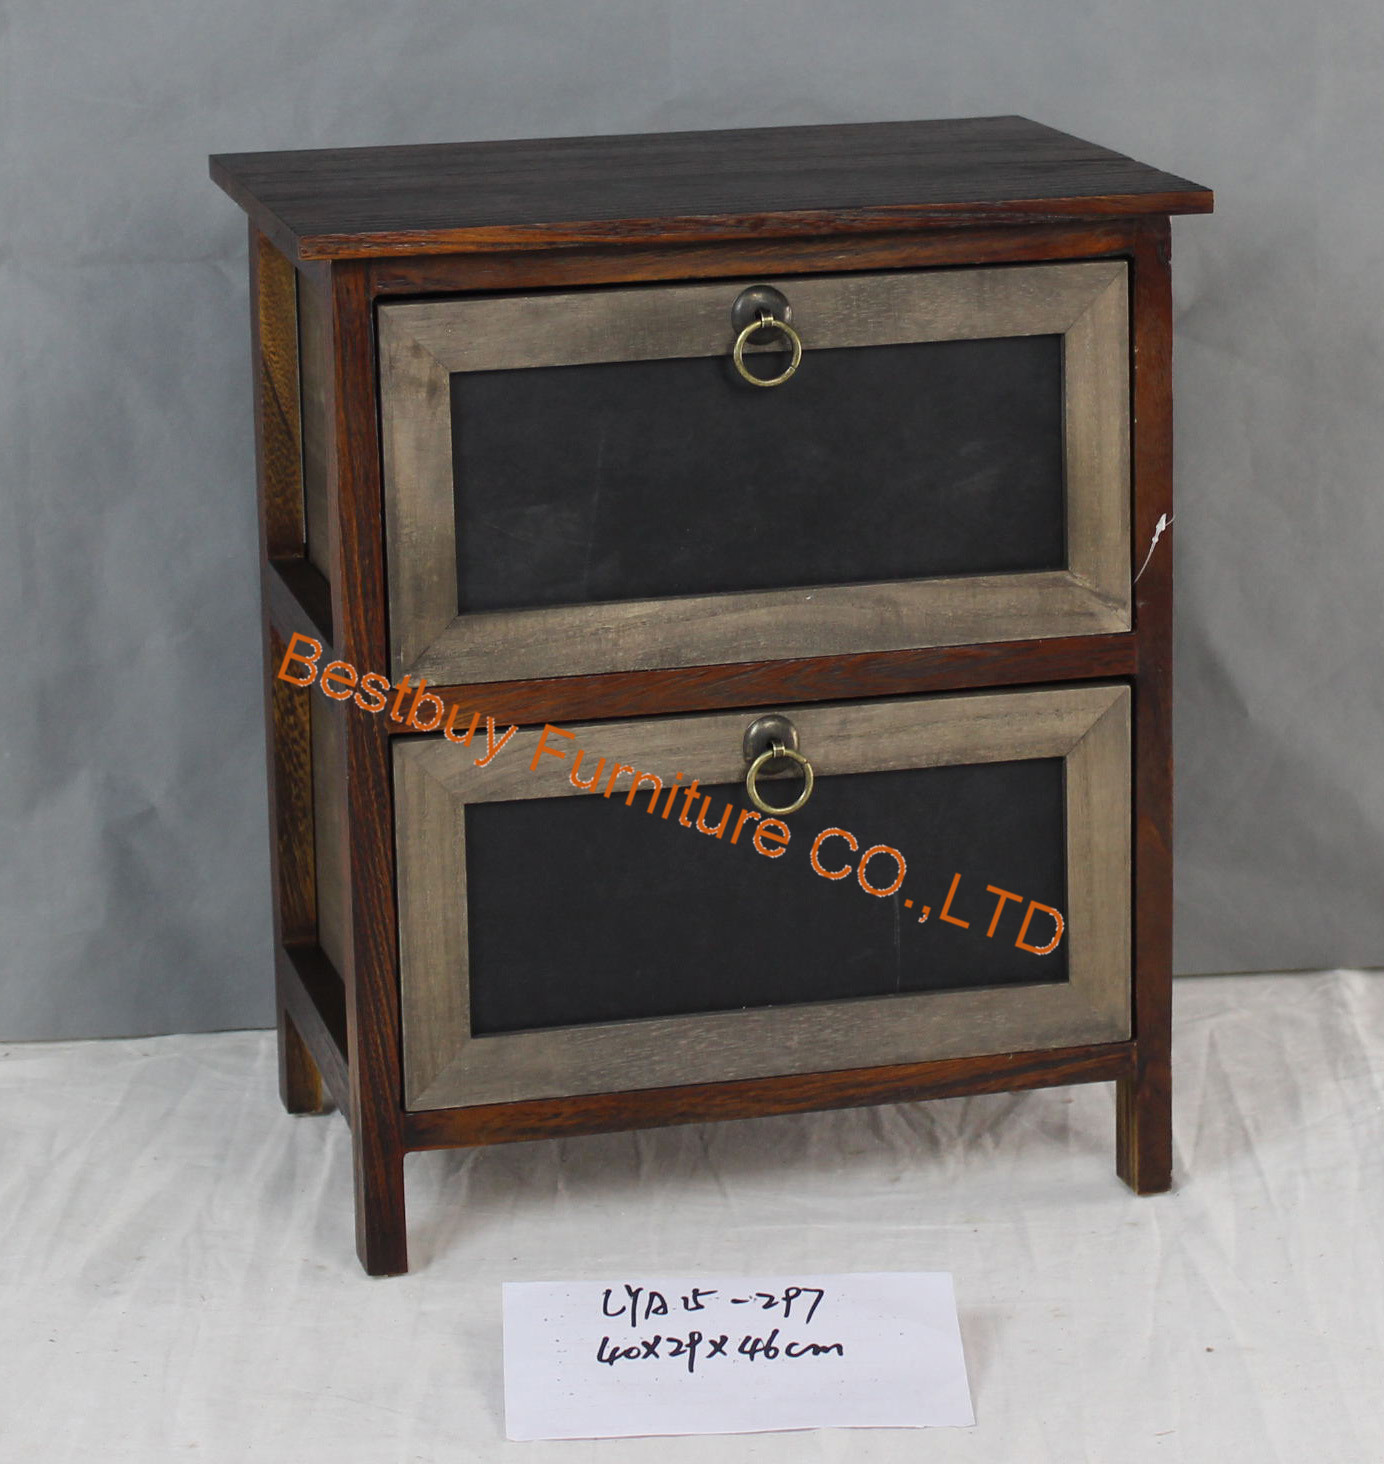 Chest Of Drawers Nightstand 2 Drawers Paulownia Wood Bedroom Bathroom 40x29x46cm Buy Solid Wood Bedroom Furniture Chest Of Drawers Nightstand Storage Cabinet Product On Alibaba Com